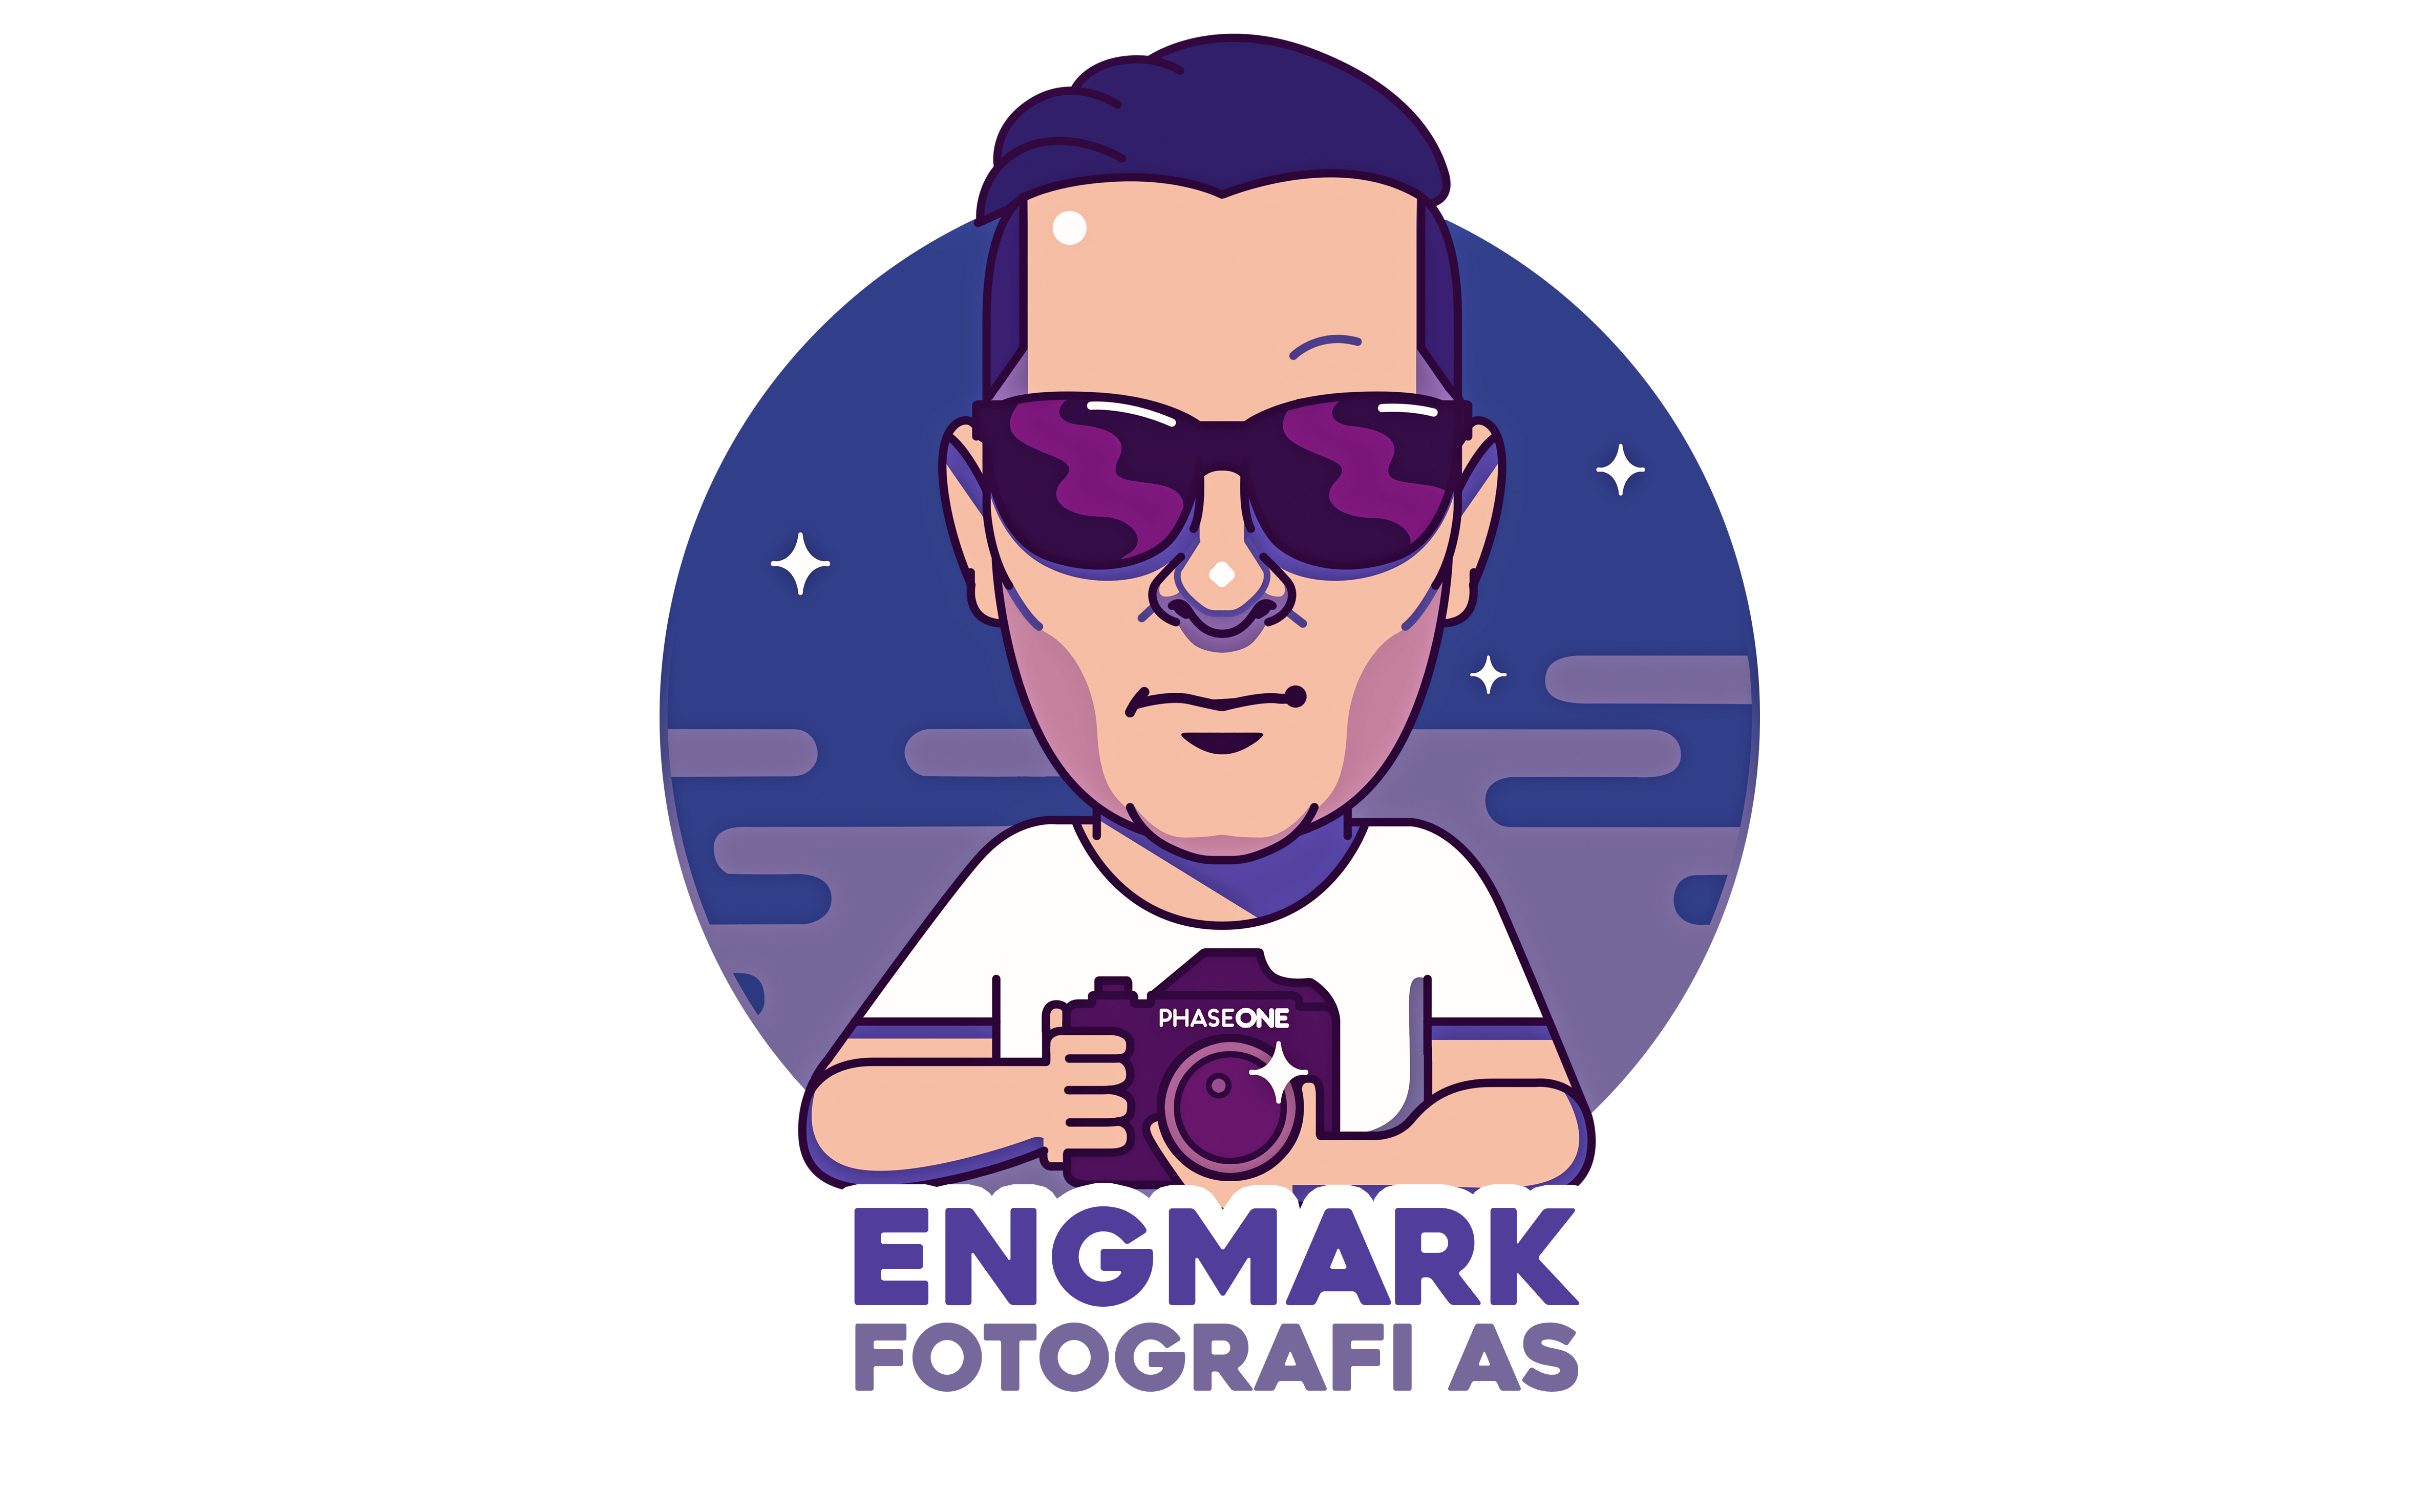 Engmark Fotografi AS